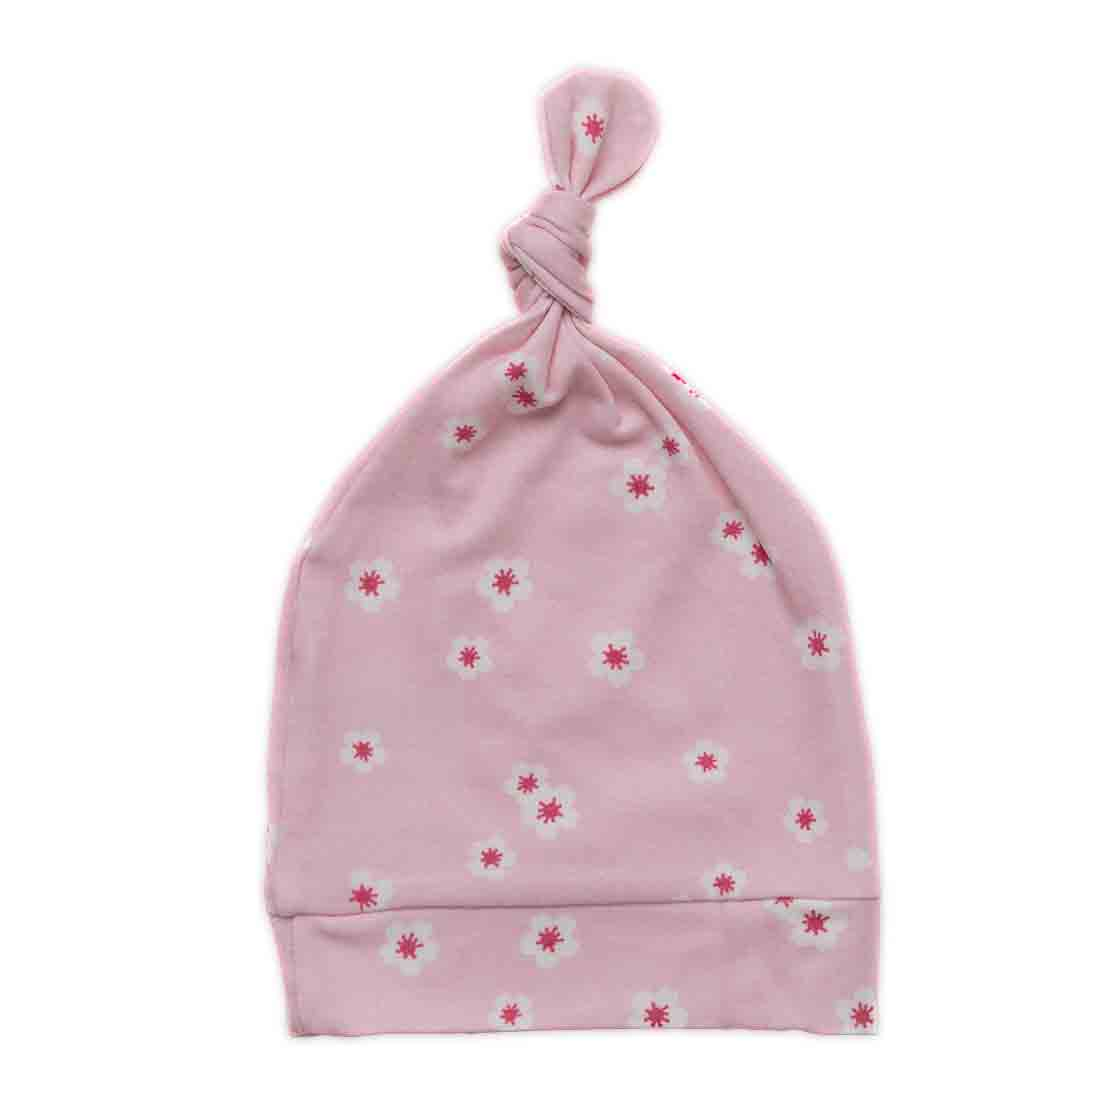 Newborn Top Knot Hat - Cherry Blossom - MEMEENO